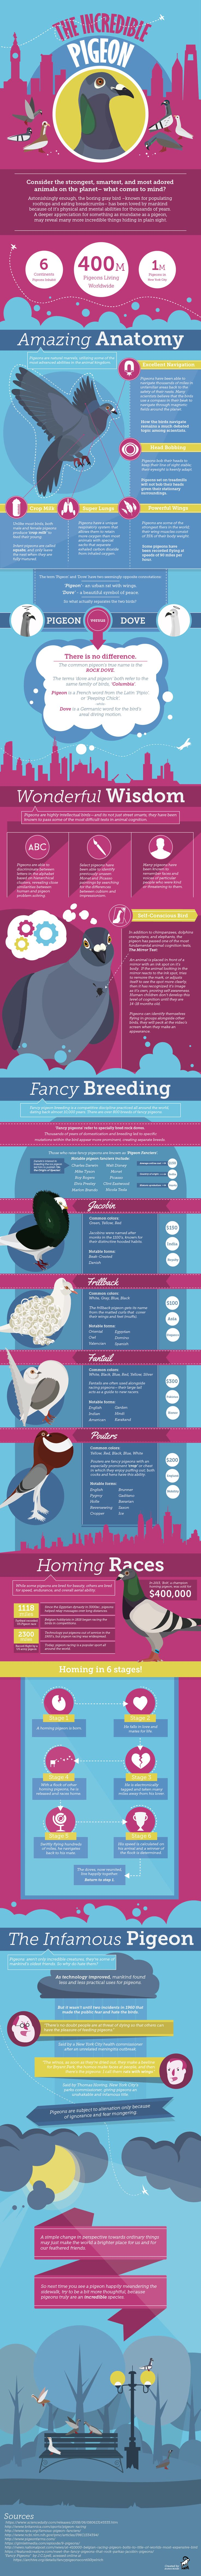 Interesting Facts about Pigeons Infographic